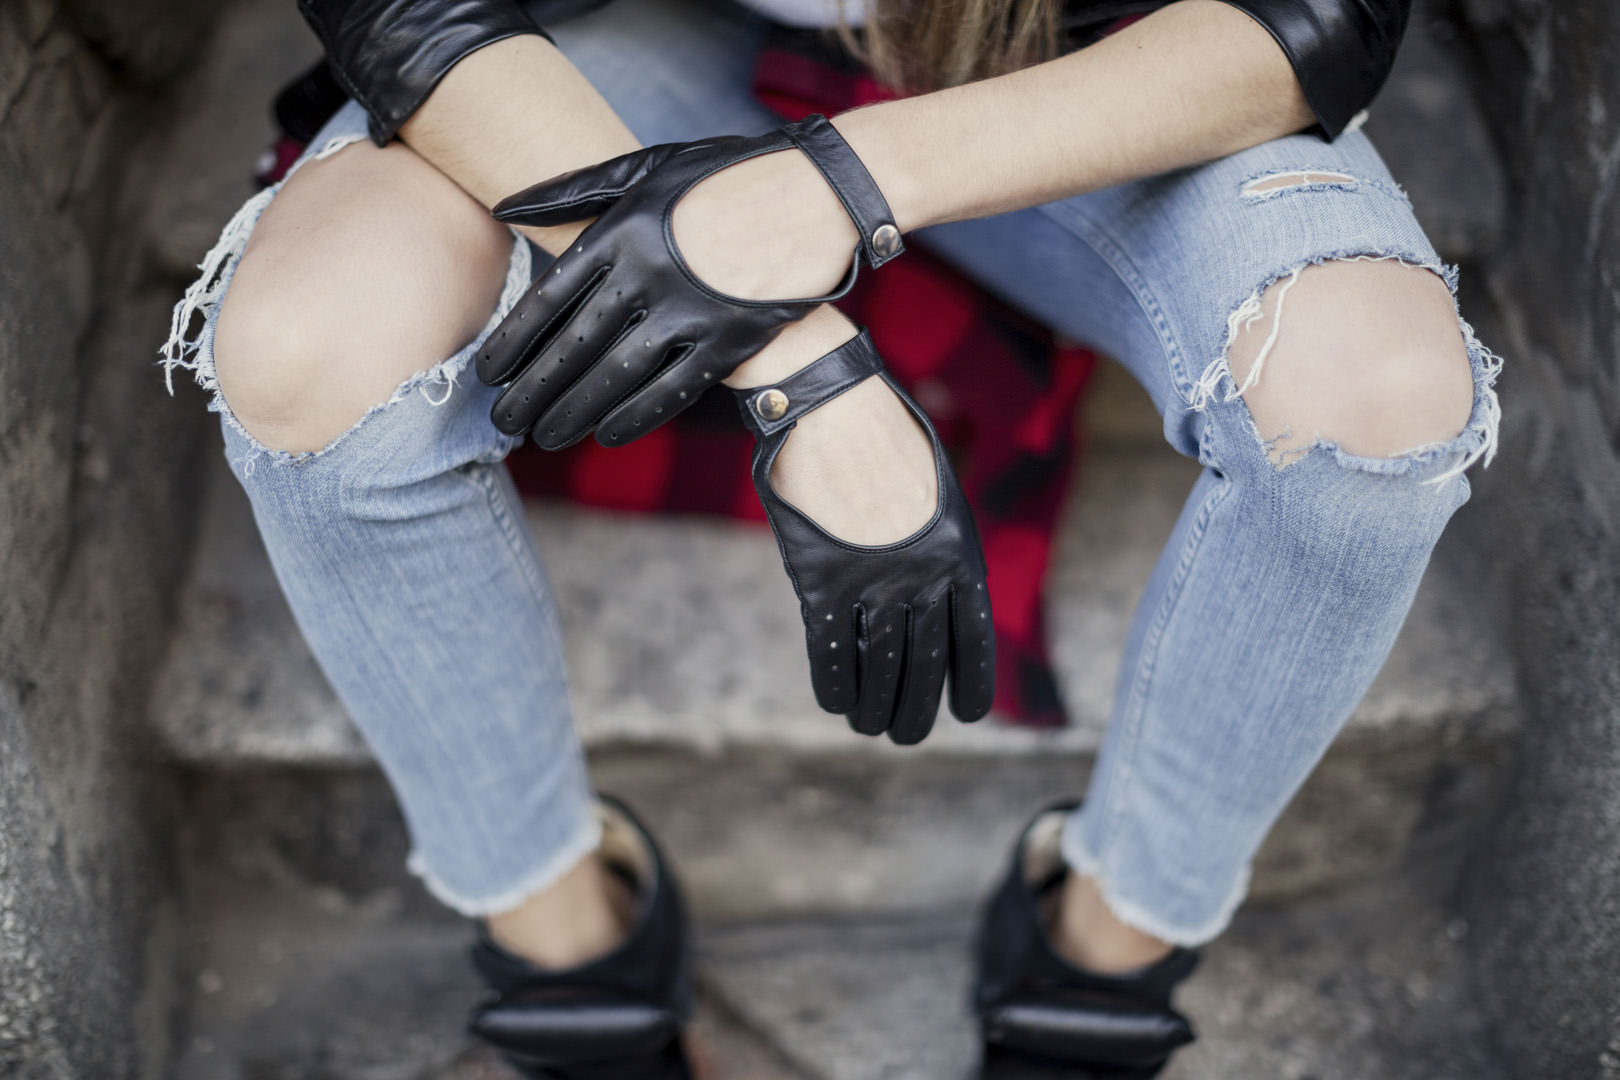 NapoGloves_winter_campaign_2015_09